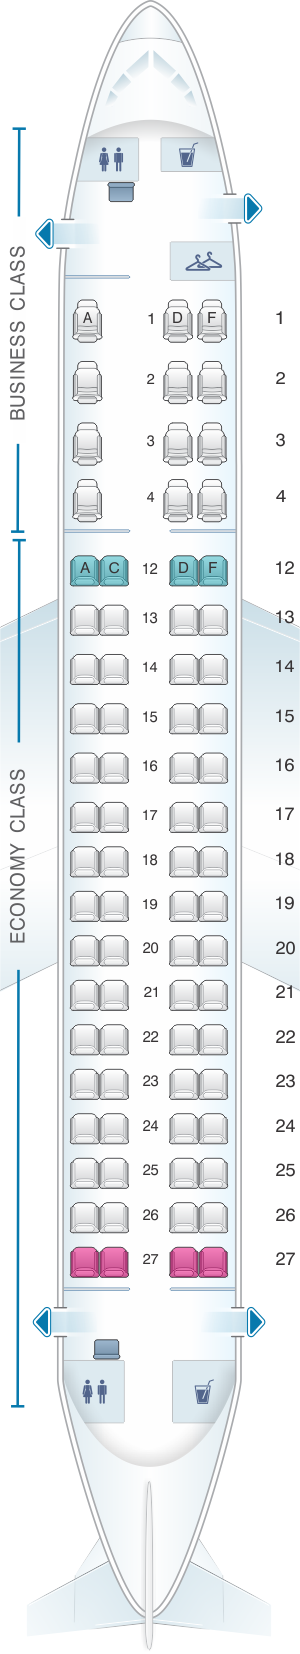 Seat map for Air Canada Embraer E175